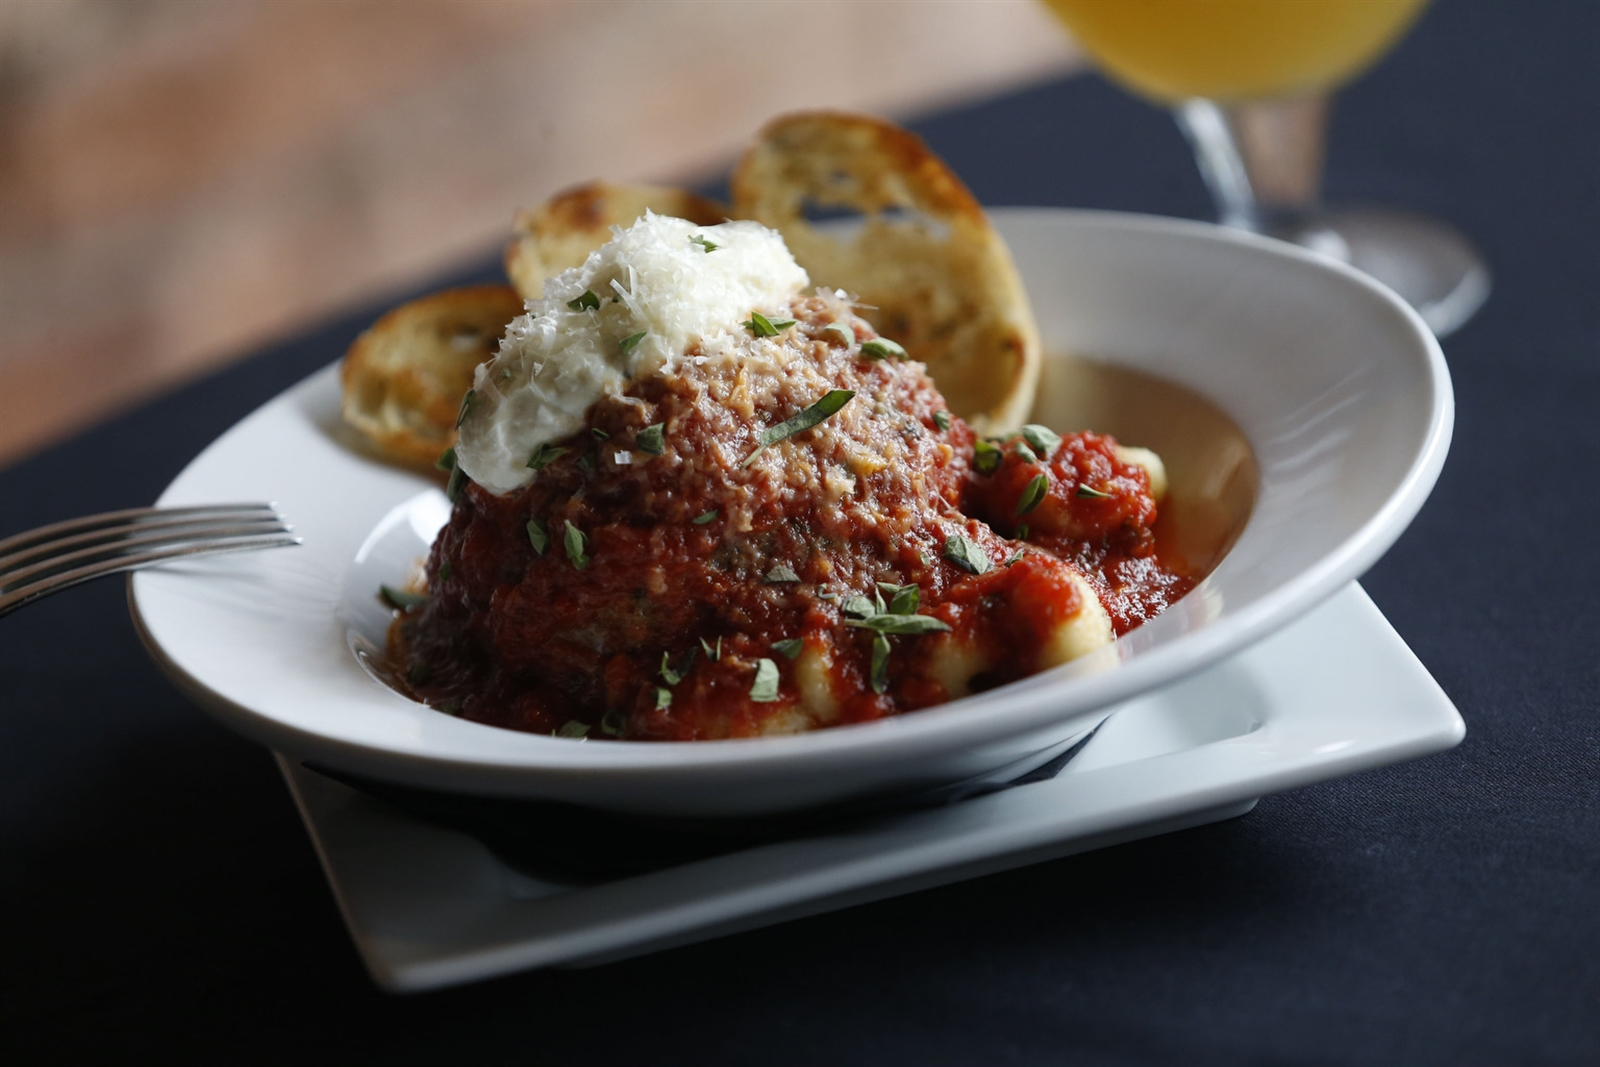 Canal Club 62's The Meatball is made from freshly ground beef and served with house marinara, ricotta, gnocchi and garlic crostini.